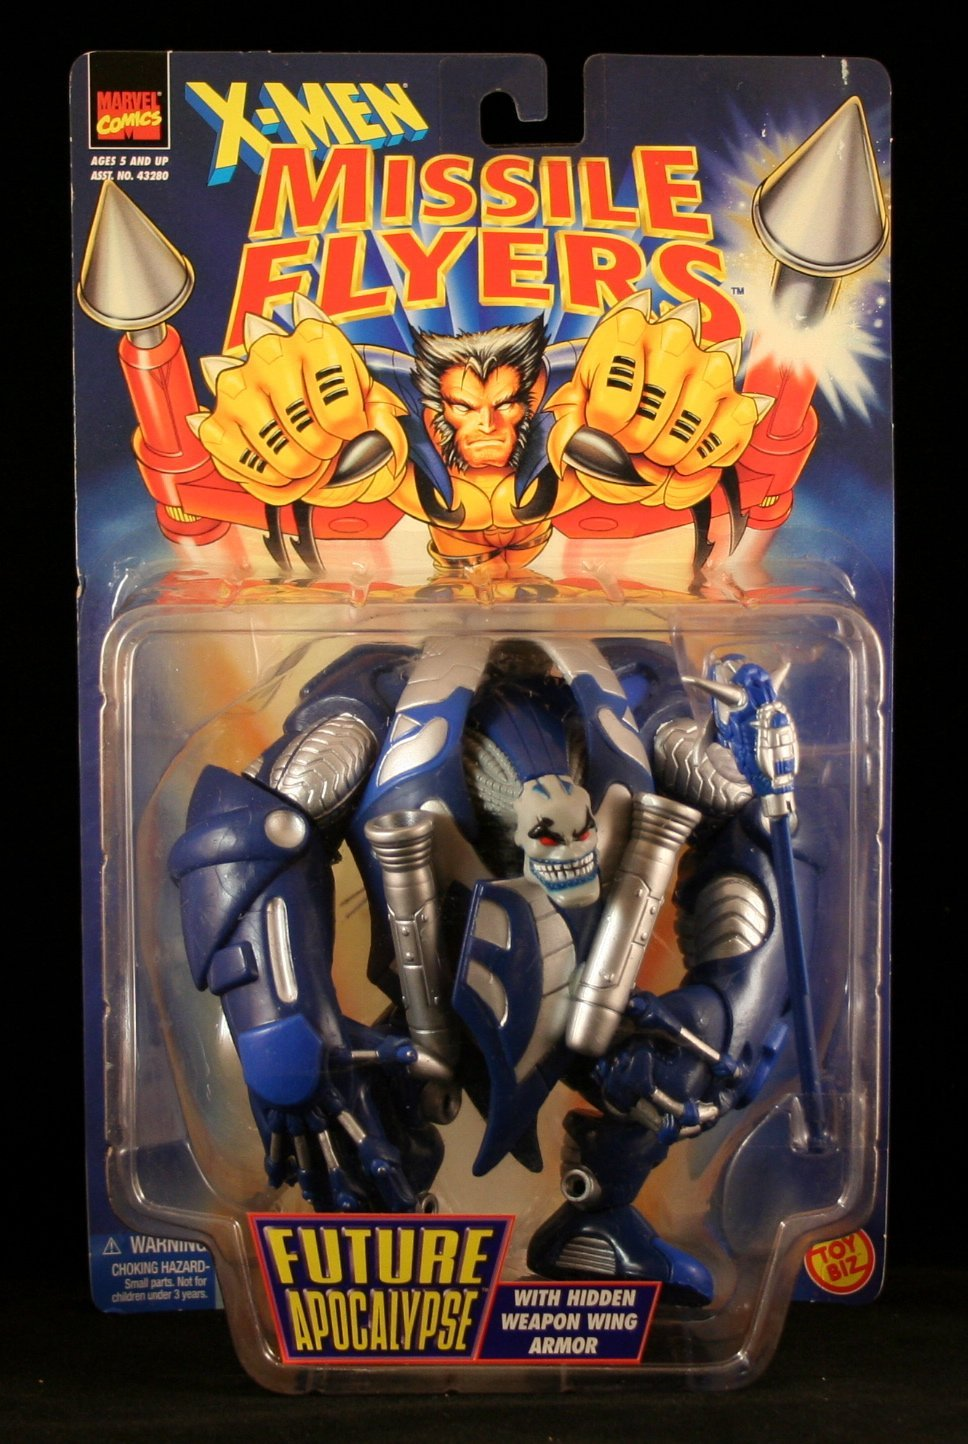 FUTURE APOCALYPSE with Hidden Weapon Wing Armor X-Men Missile Flyers Action Figure by Toy Biz